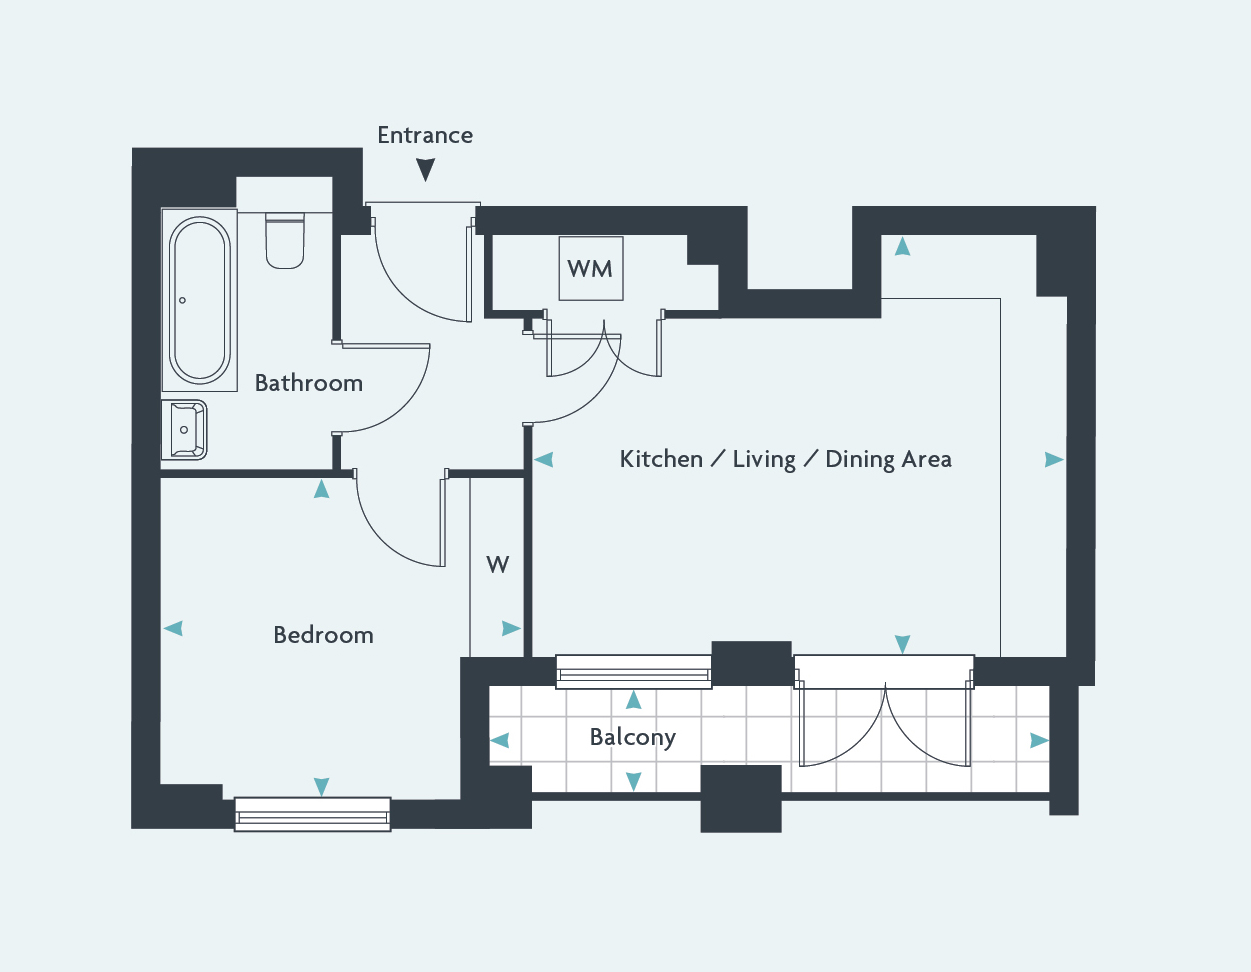 Gatwick Airport Floor Plan 1 Bedroom Flat For Sale In Lexicon Terrace At East City